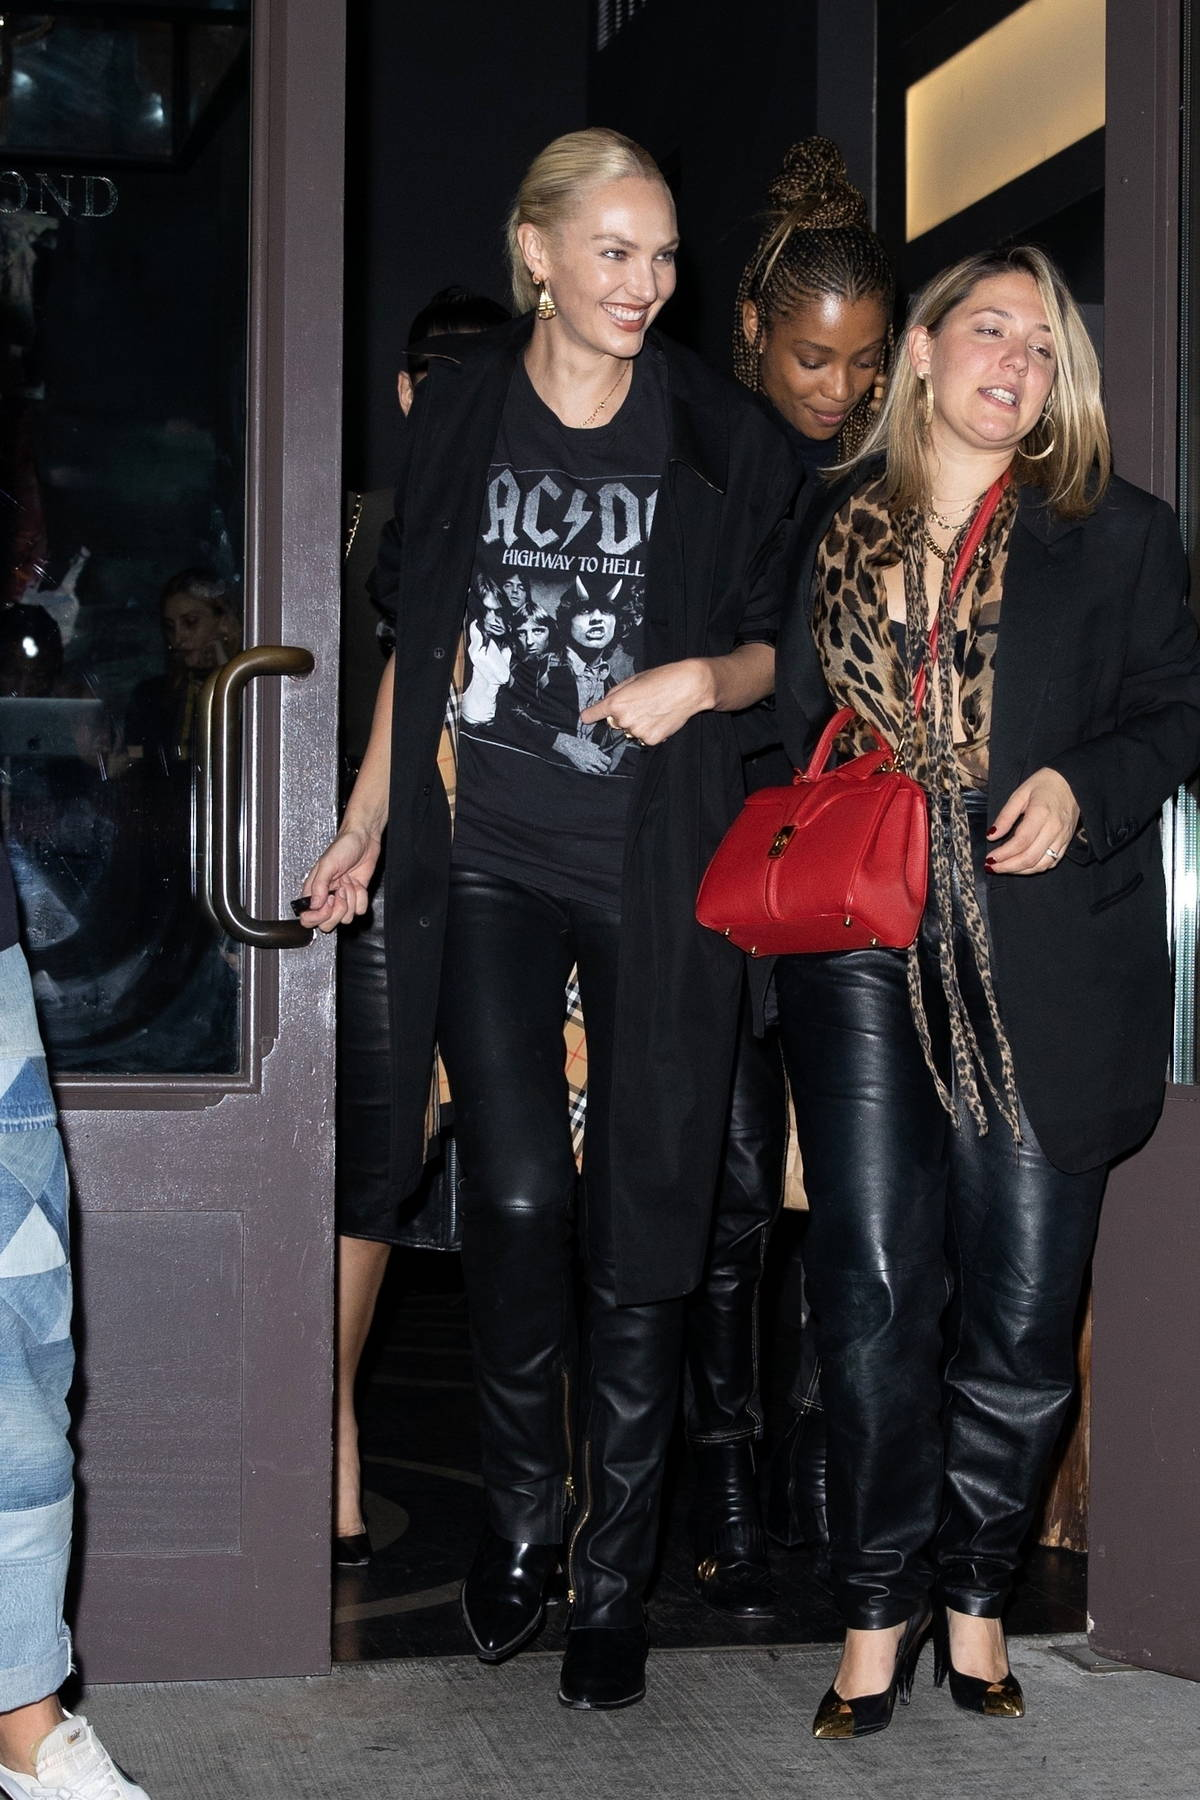 Candice Swanepoel rocks an ACDC T-shirt and leather pants while celebrating her 33rd birthday with friends in New York City